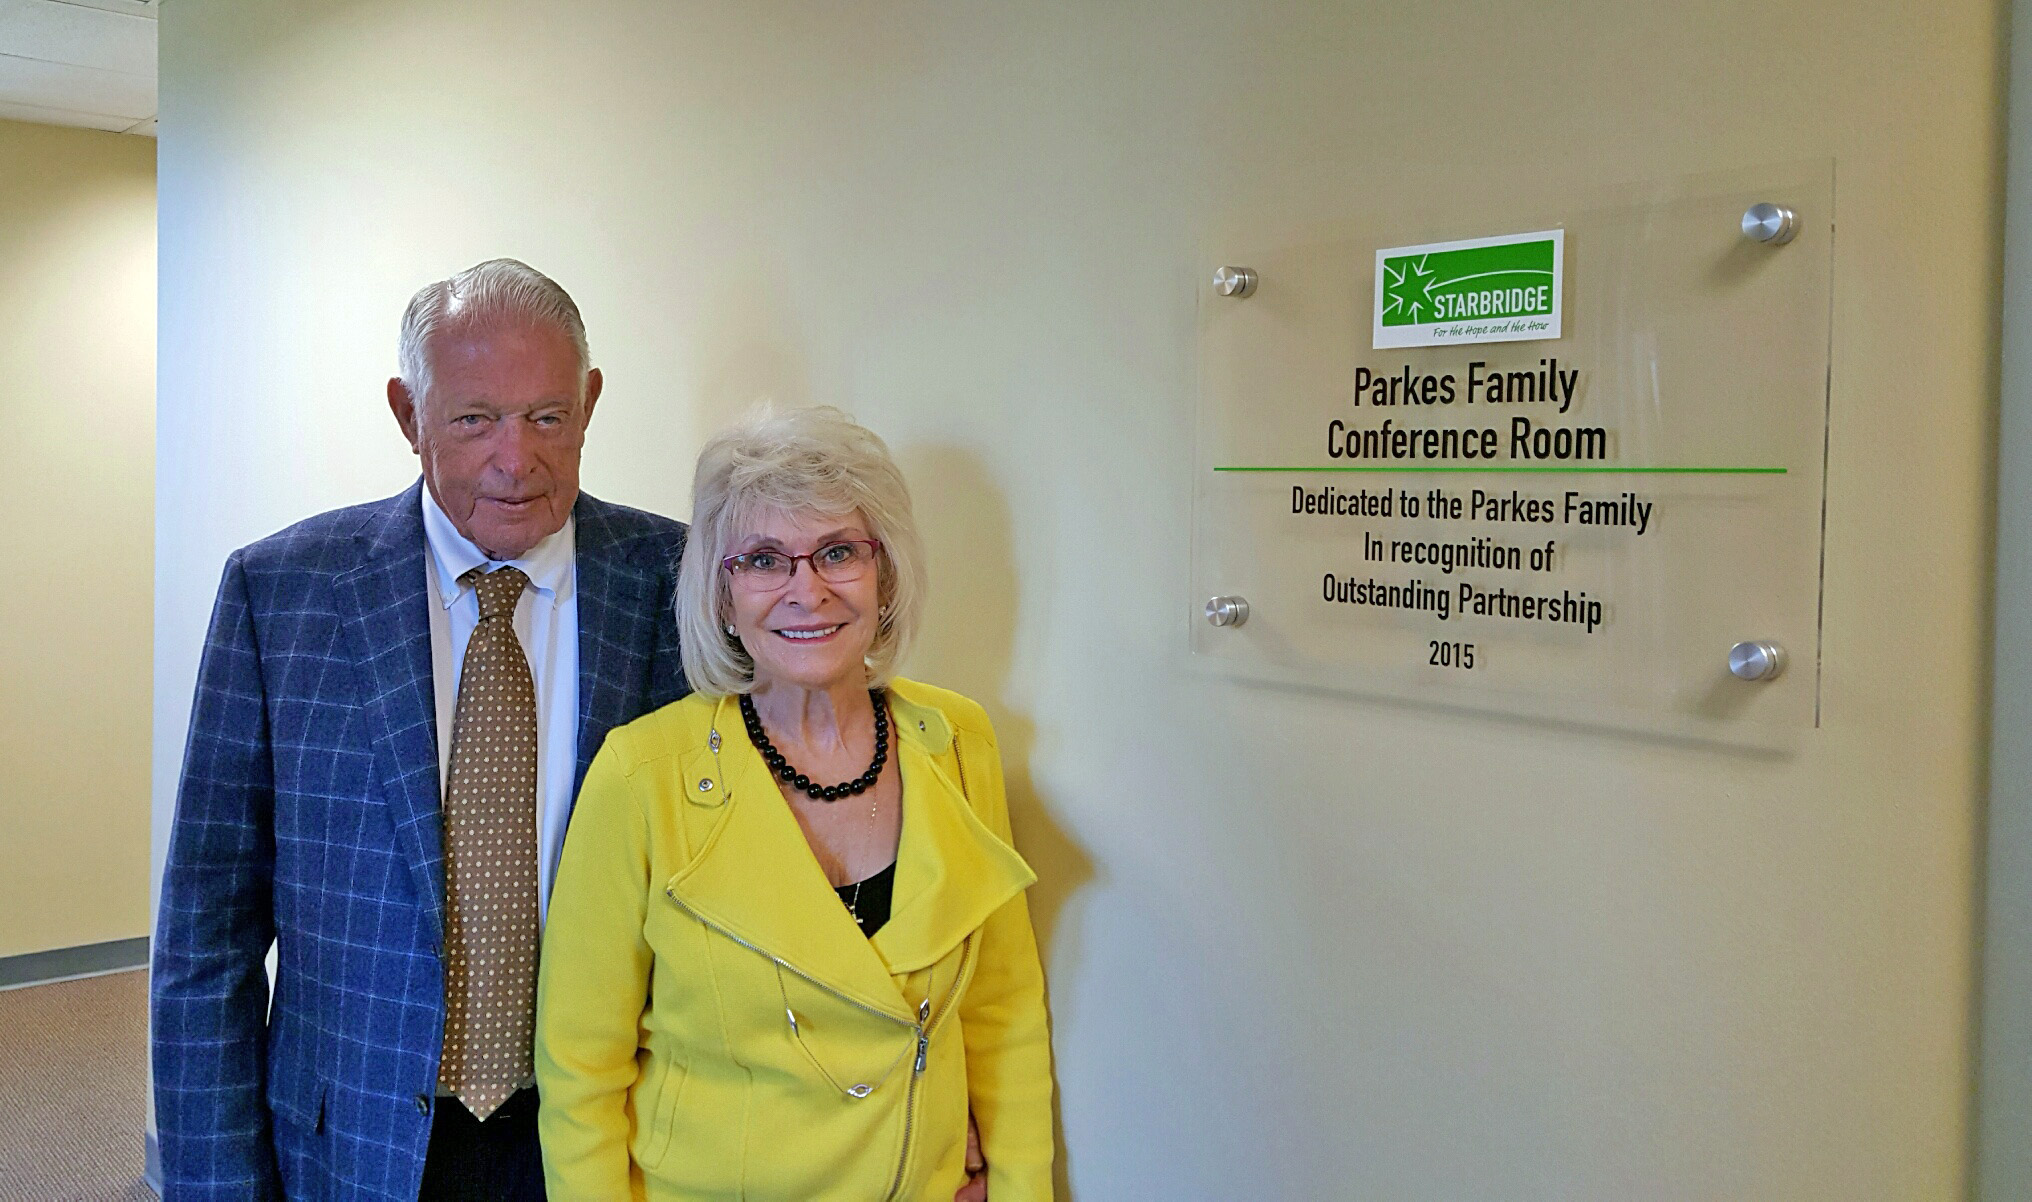 Walter and Barbara Parkes outside the Parkes Family Conference Room at Starbridge's main office